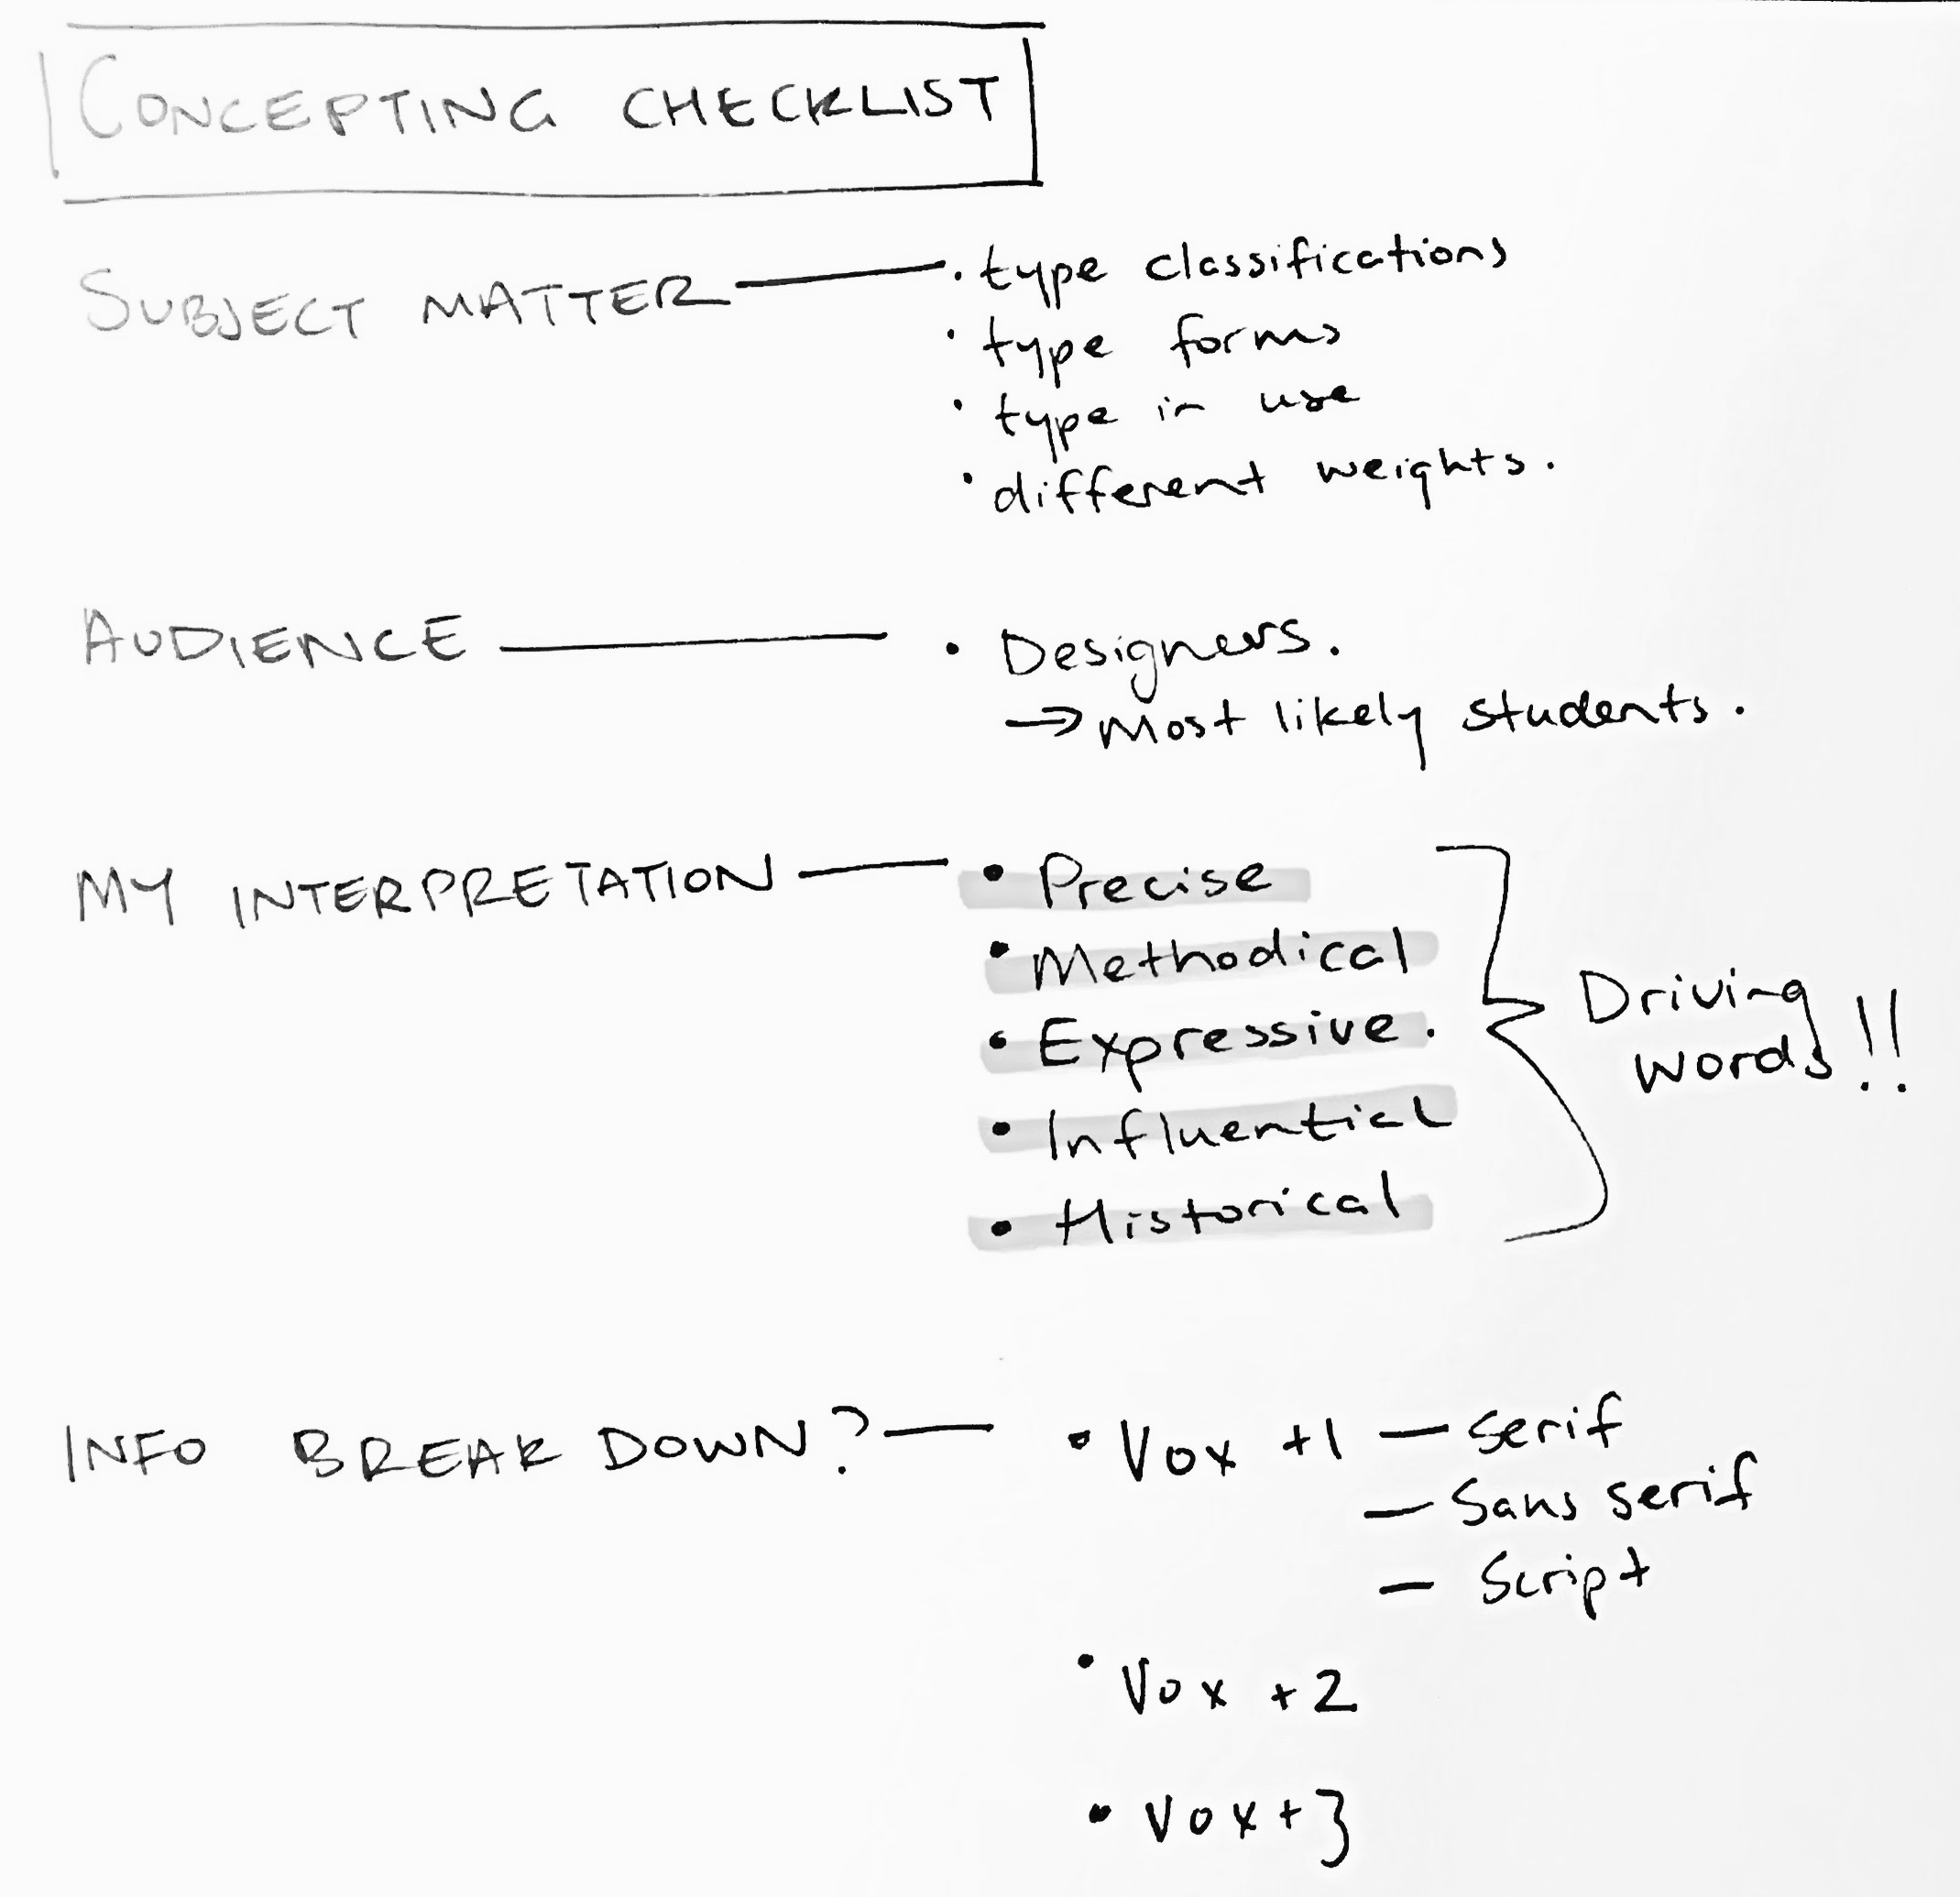 Some early notes to help drive a certain design direction. The words that drove the final aesthetic originated from my interpretation of the subject matter: precise, methodical, influential, expressive and historical.